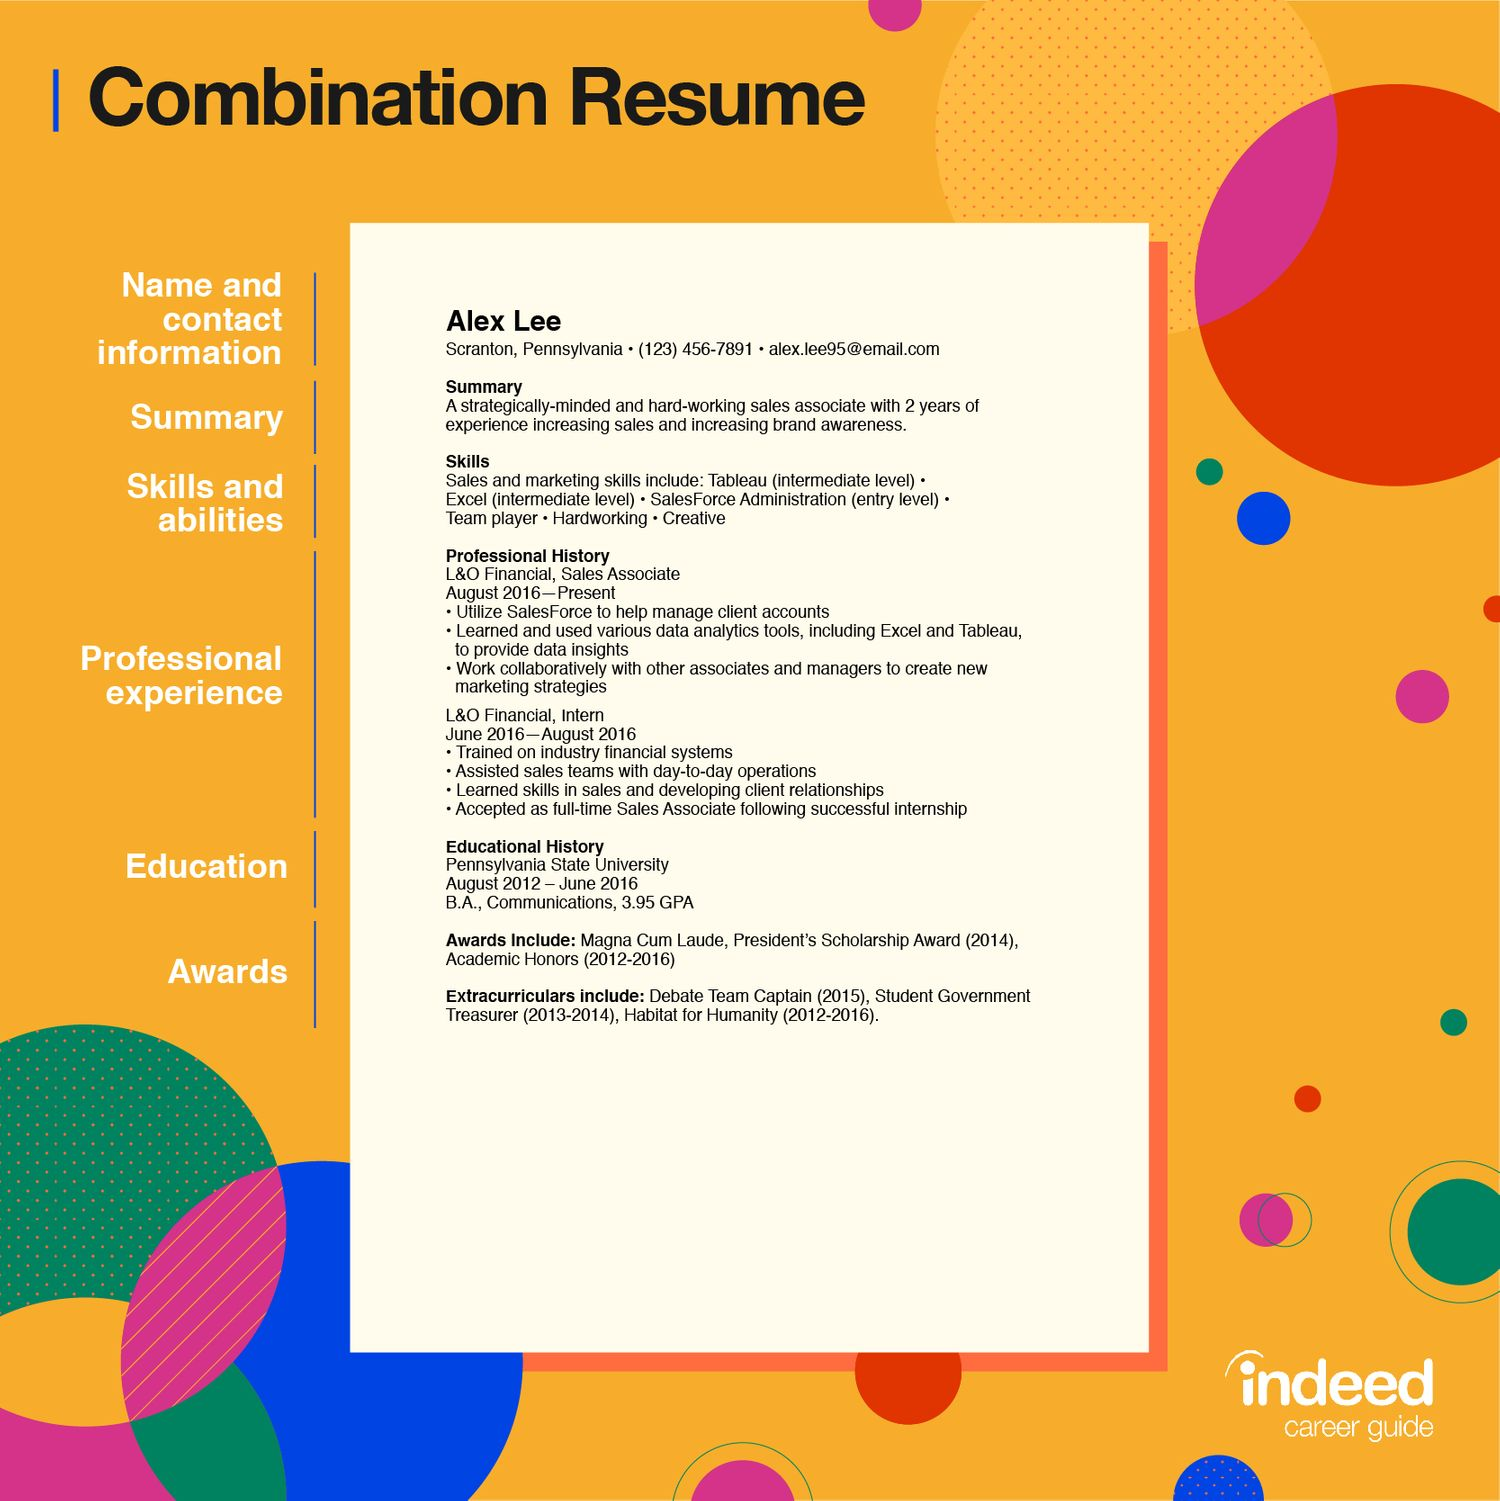 resume format guide tips and examples of the best formats indeed structure writing Resume Structure Of Resume Writing